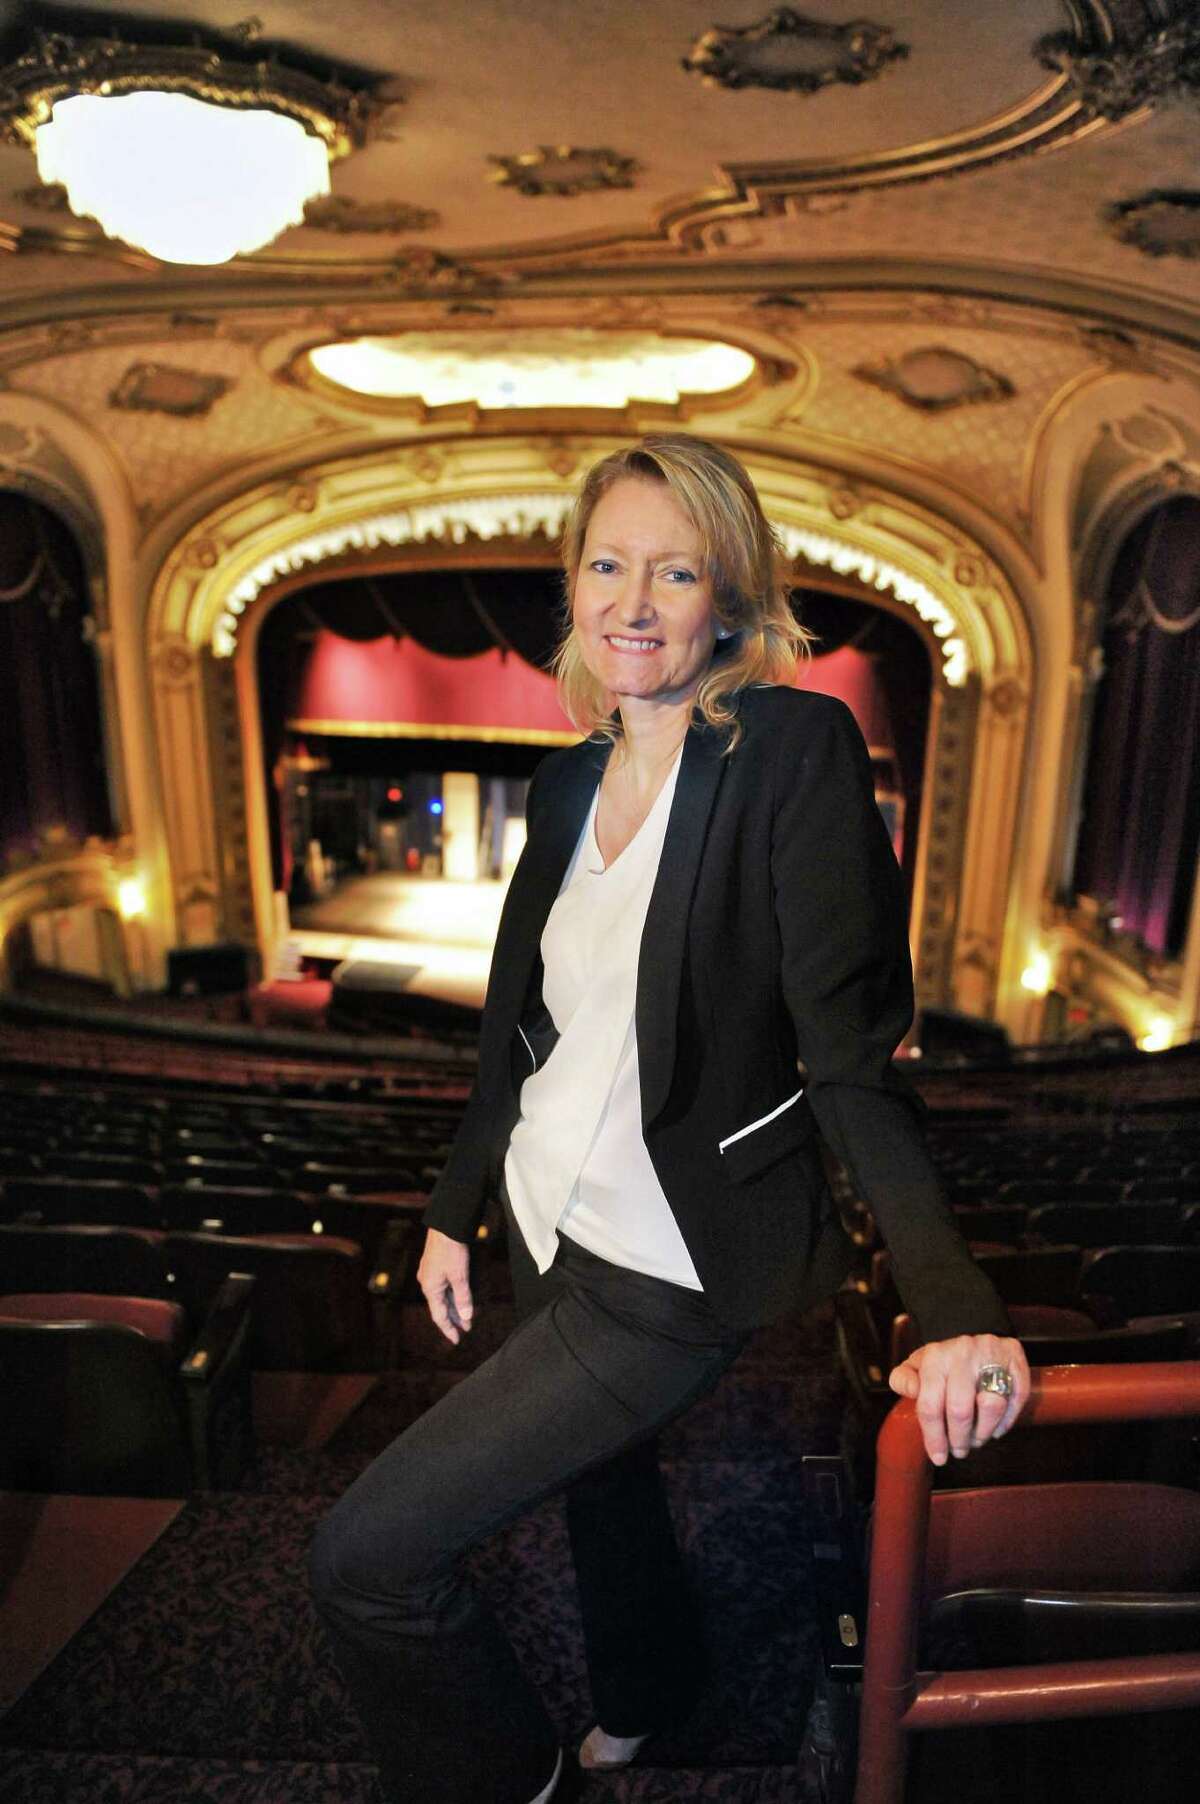 Holly Brown, executive director of the Palace Theatre, stands in the balcony on Wednesday, May 25, 2016, at the Palace Theatre in Albany, N.Y. (John Carl D'Annibale / Times Union)